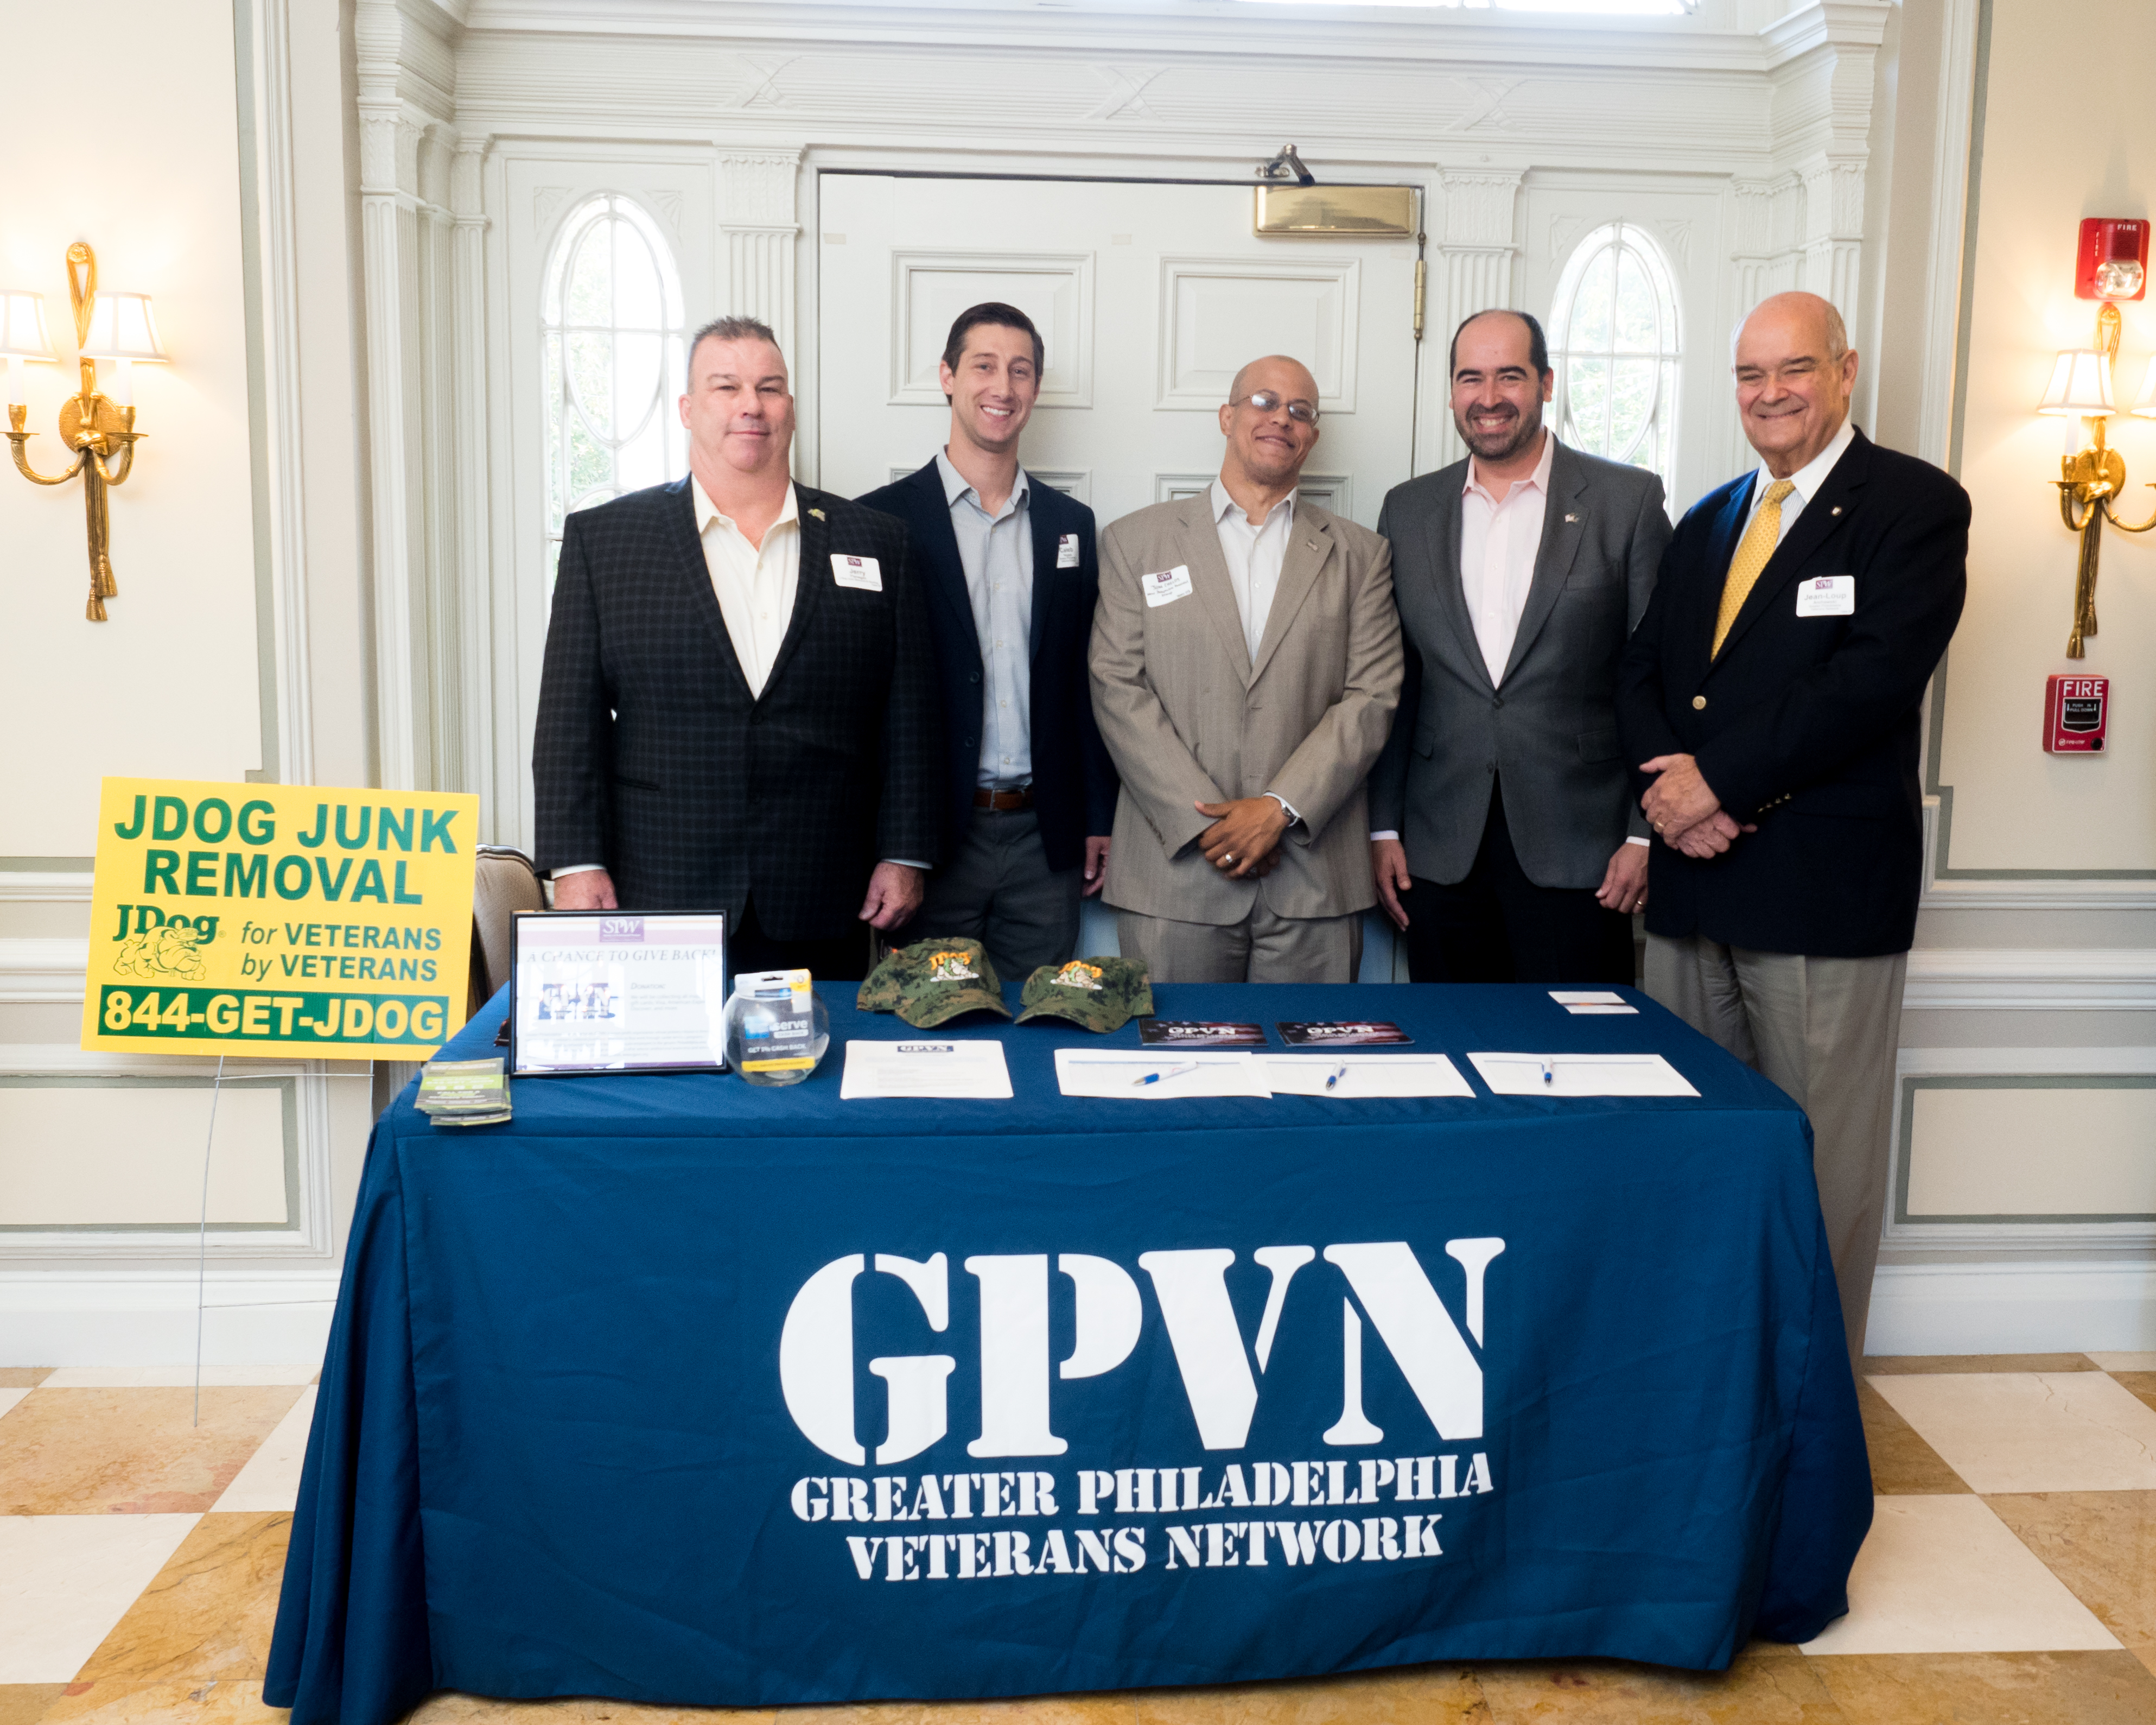 Featured Non-Profit GPVN